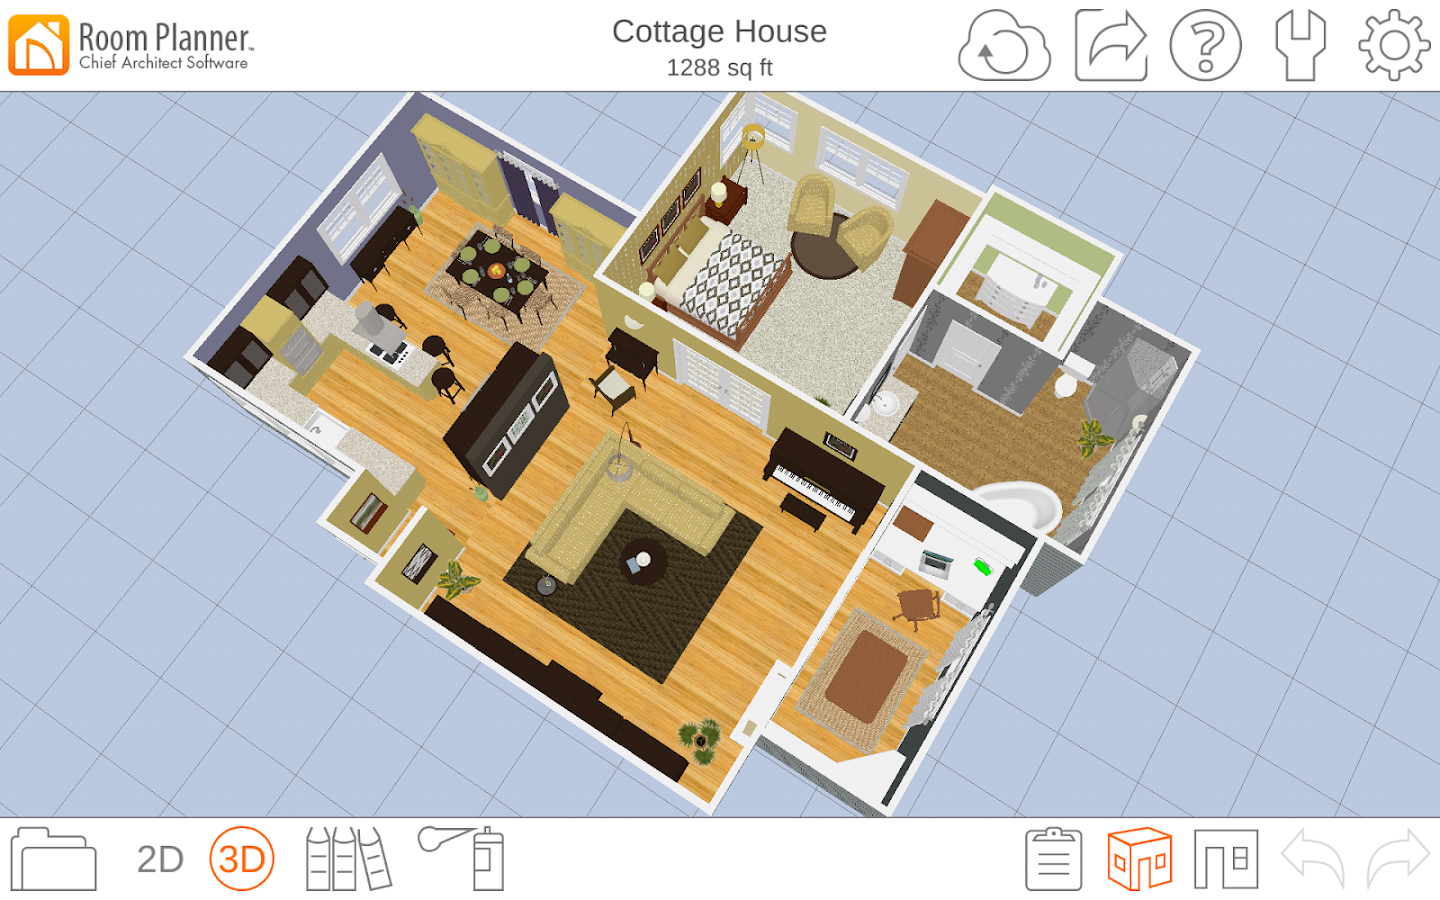 Room planner home design android apps on google play for Make room planner